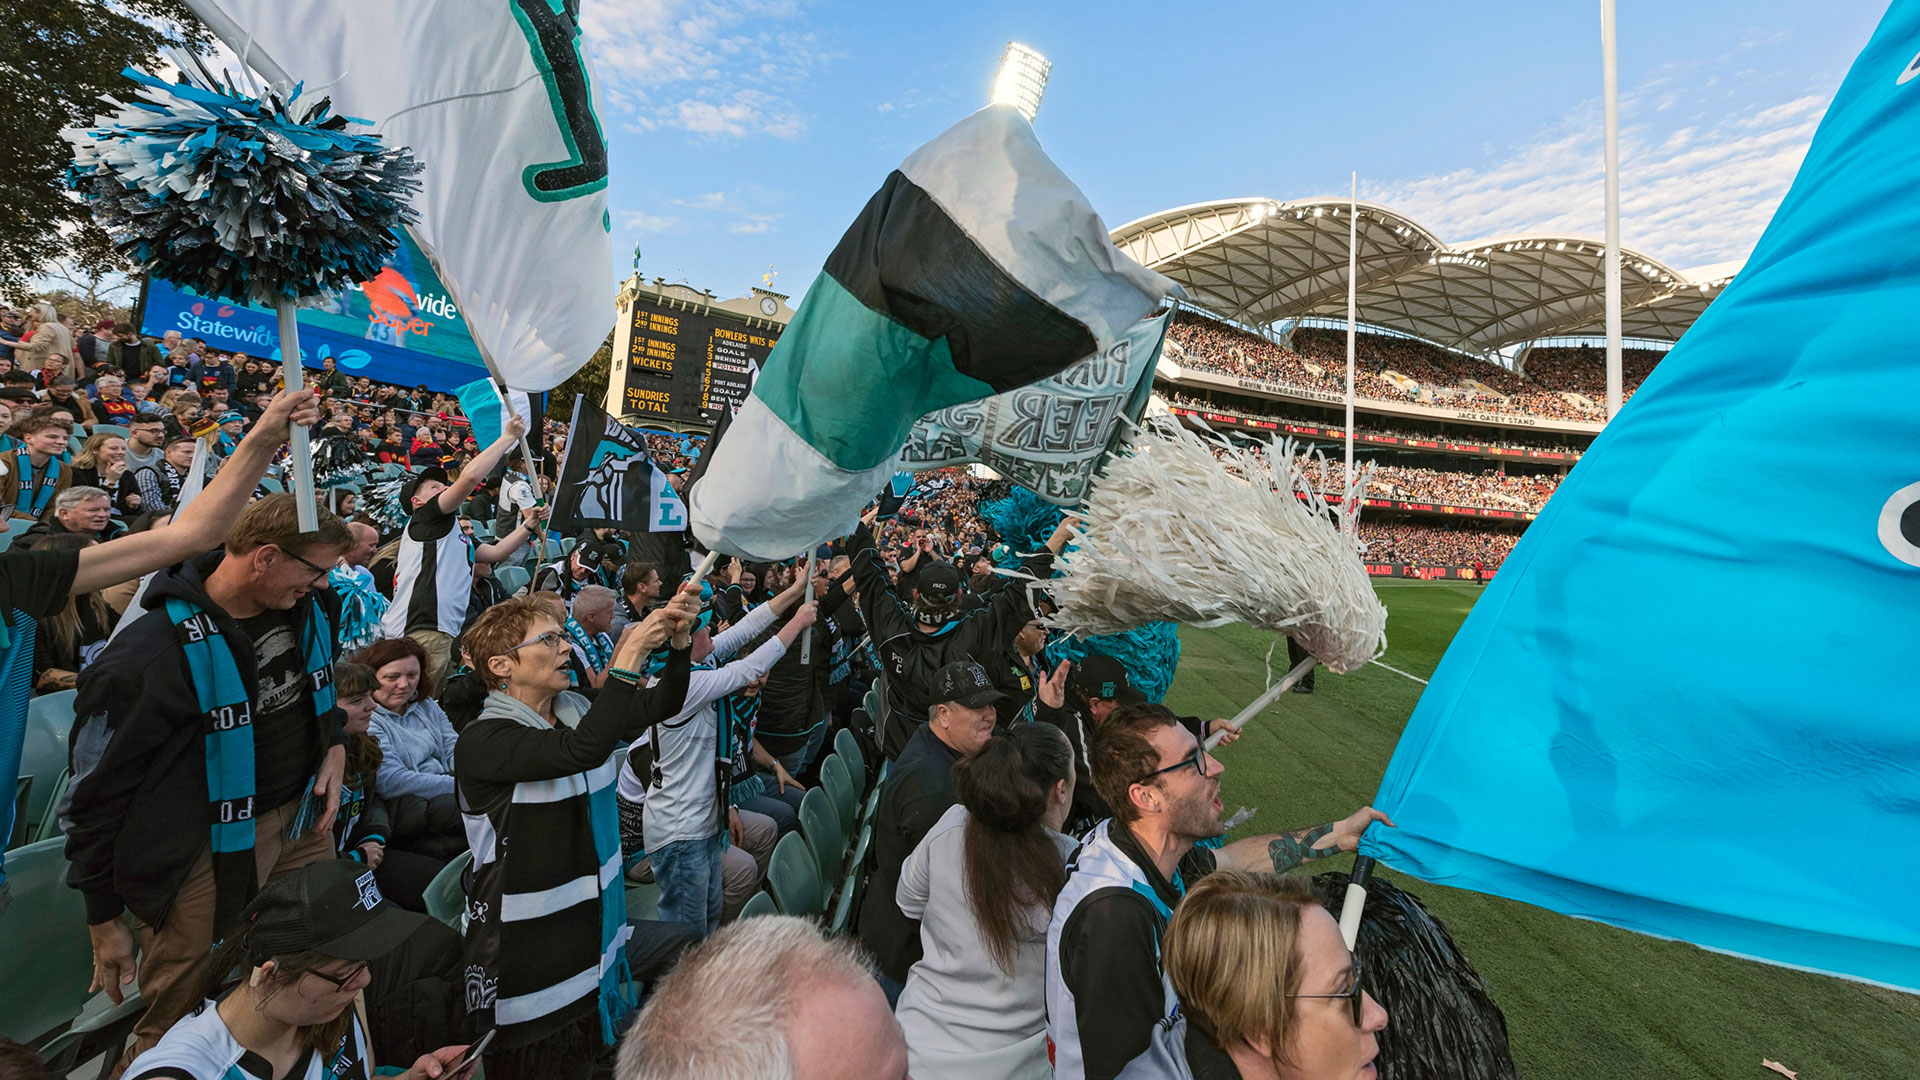 Northern Mound welcomes back crowds for Preliminary Final